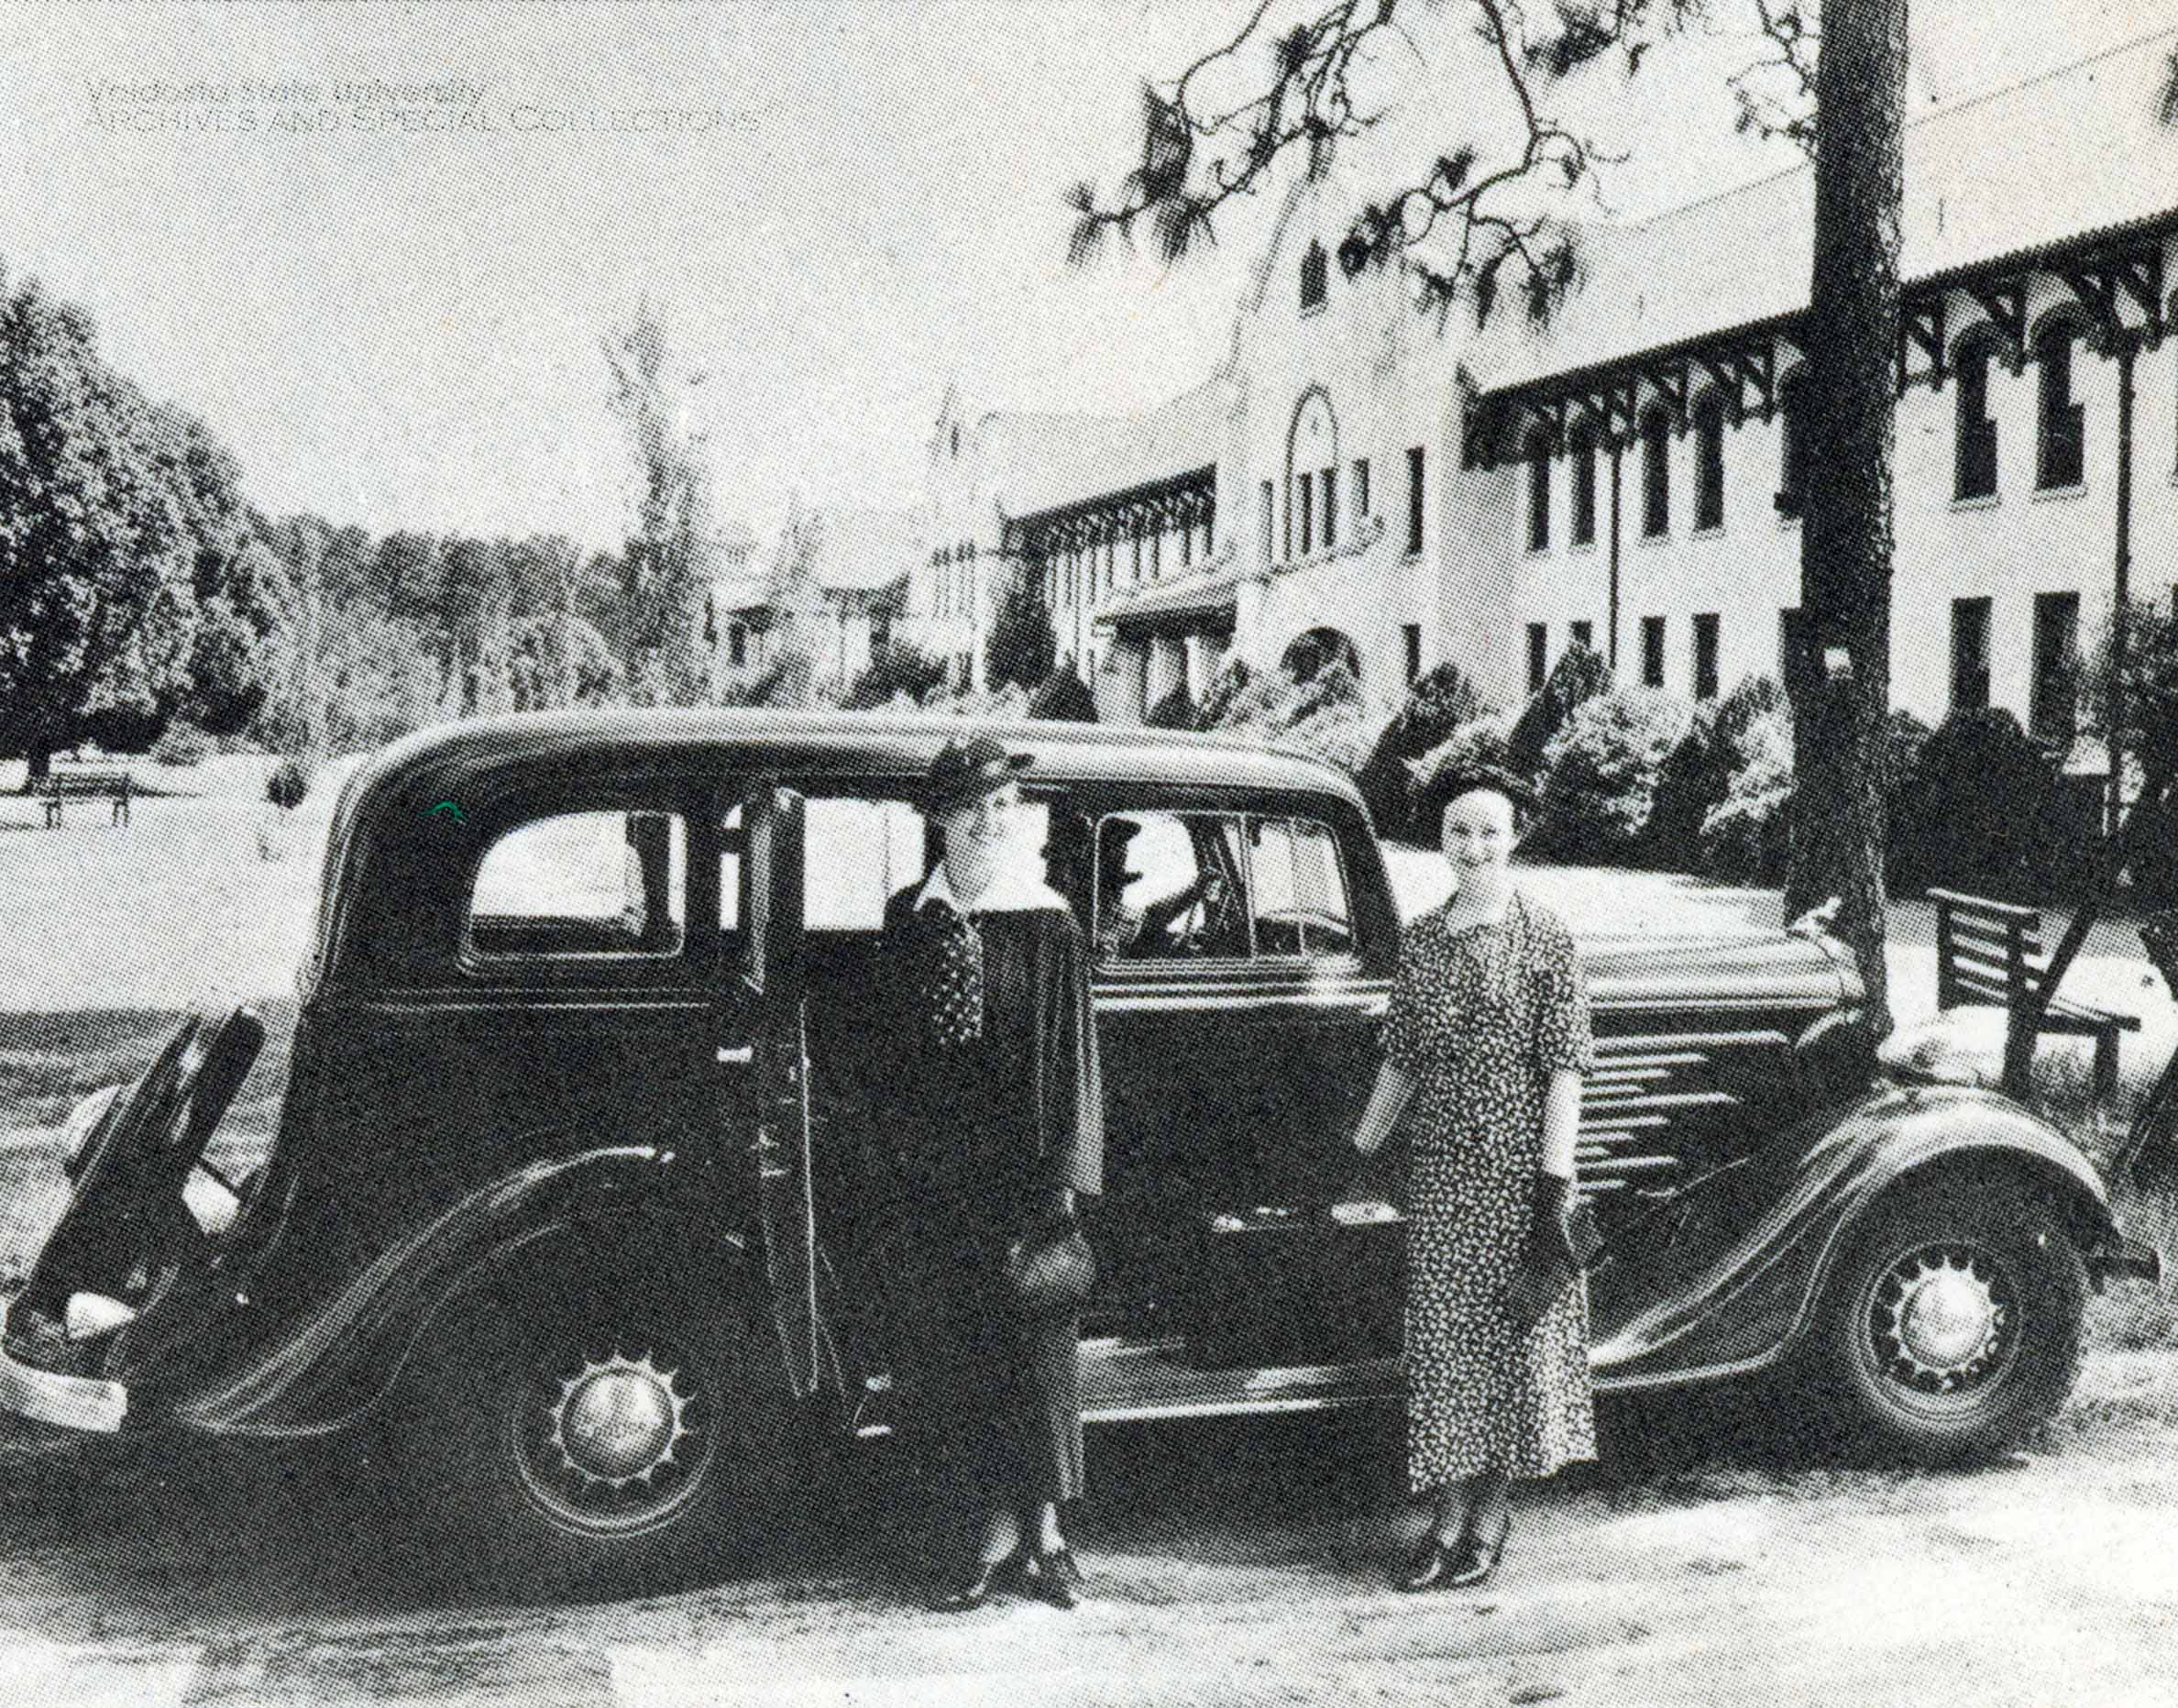 1936, Students On Move-In Day